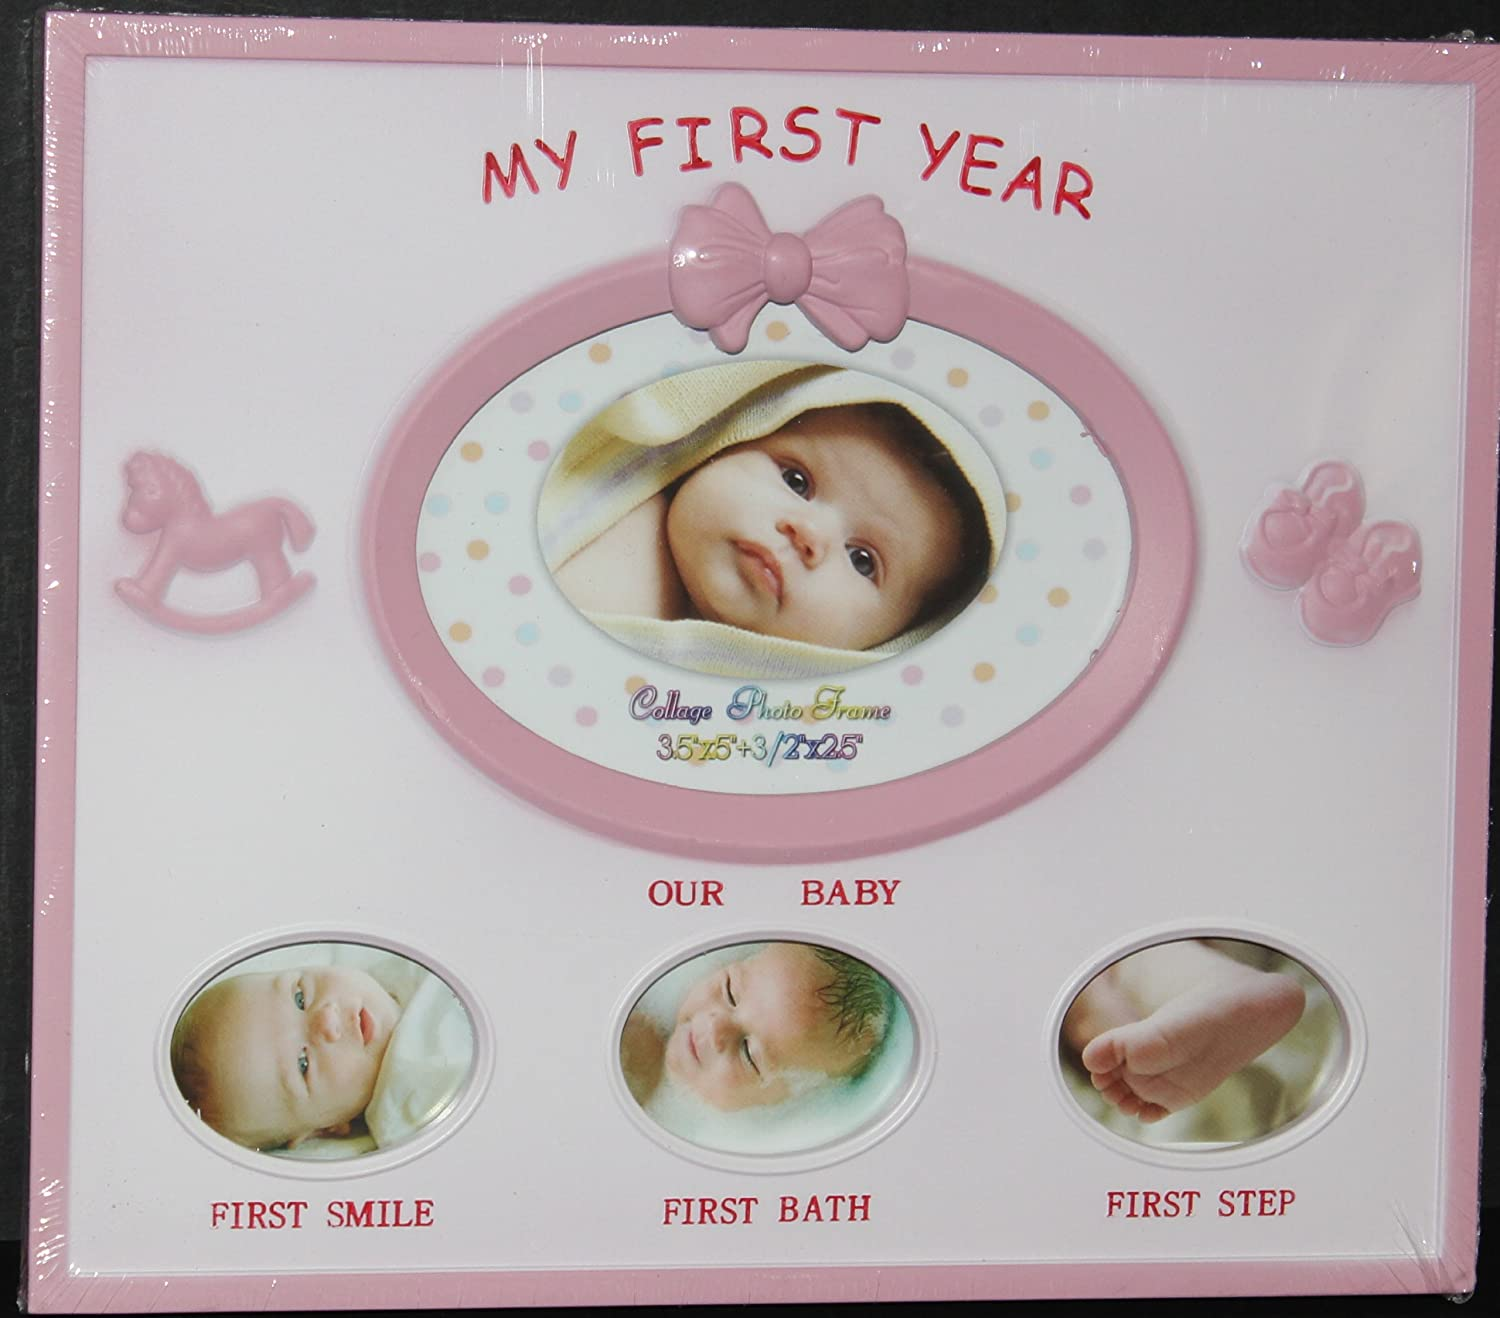 Baby Photo Frame - My First Year PINK by Unknown   B007A4VWNS